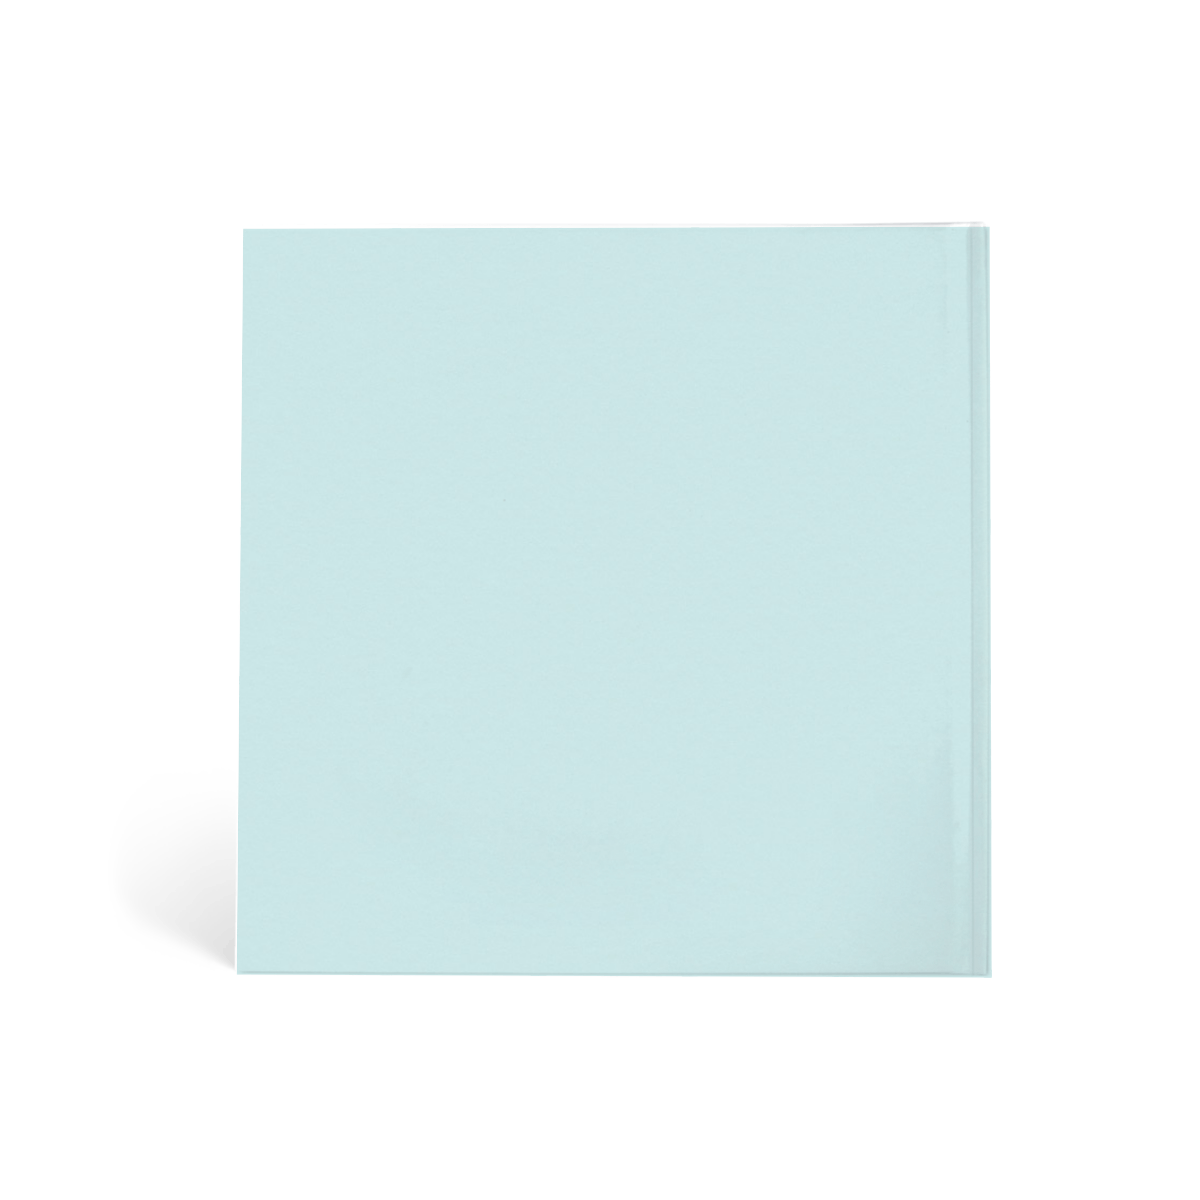 Https%3a%2f%2fwww.papier.com%2fproduct image%2f39885%2f24%2fcolour block 9897 rueckseite 1528910996.png?ixlib=rb 1.1